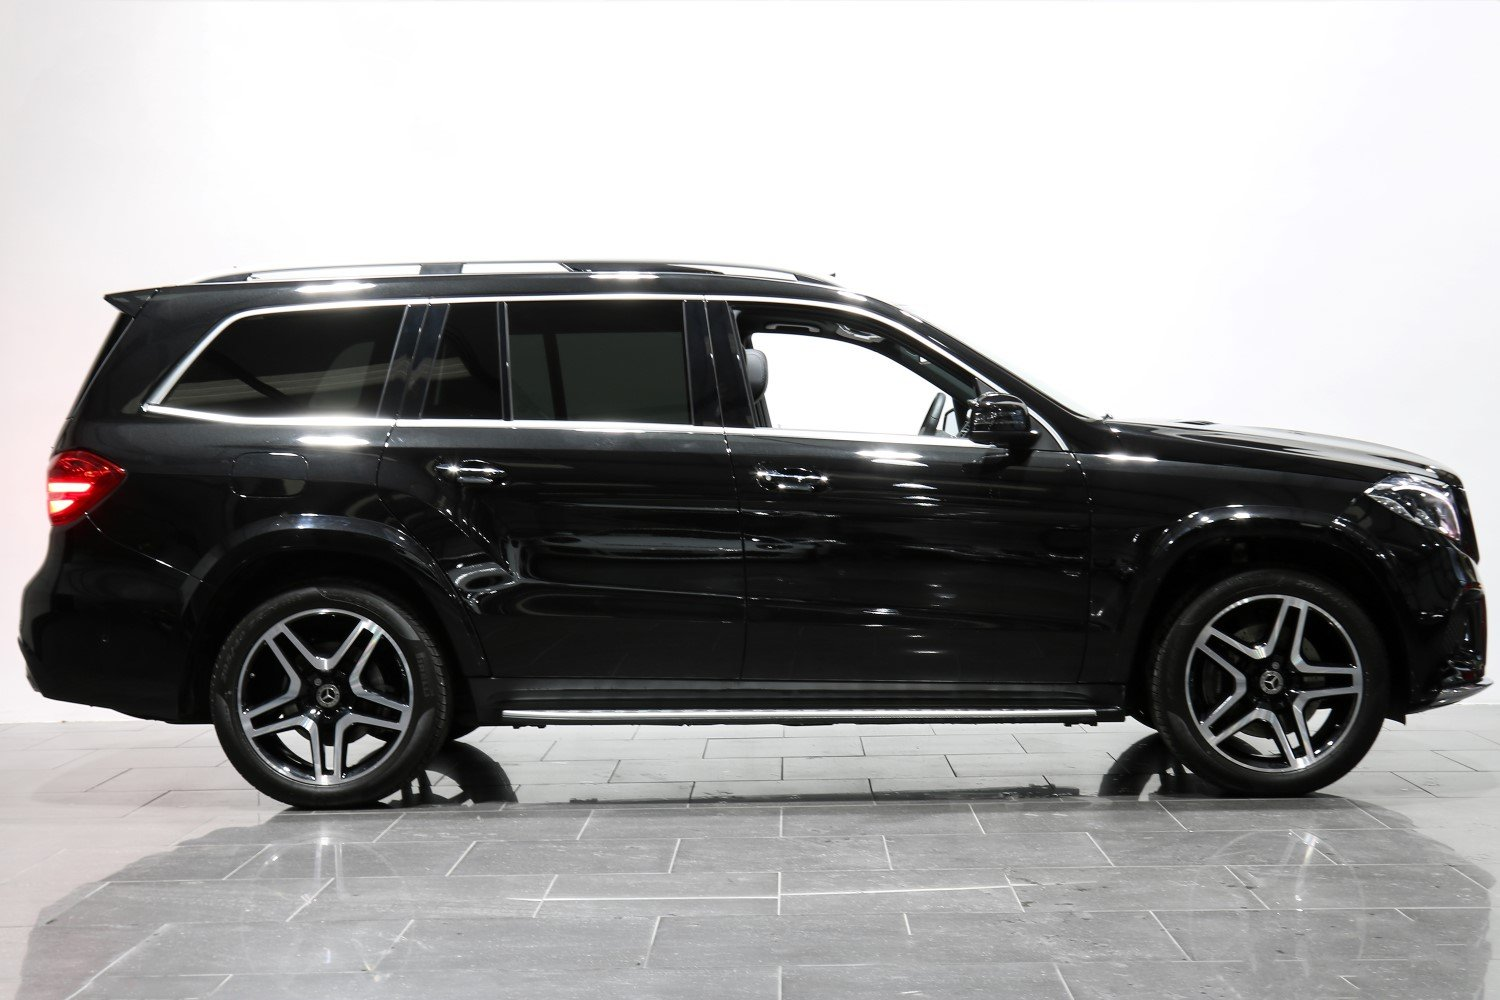 2018 18 68 MERCEDES BENZ GLS 350 D AMG LINE AUTO For Sale (picture 2 of 6)